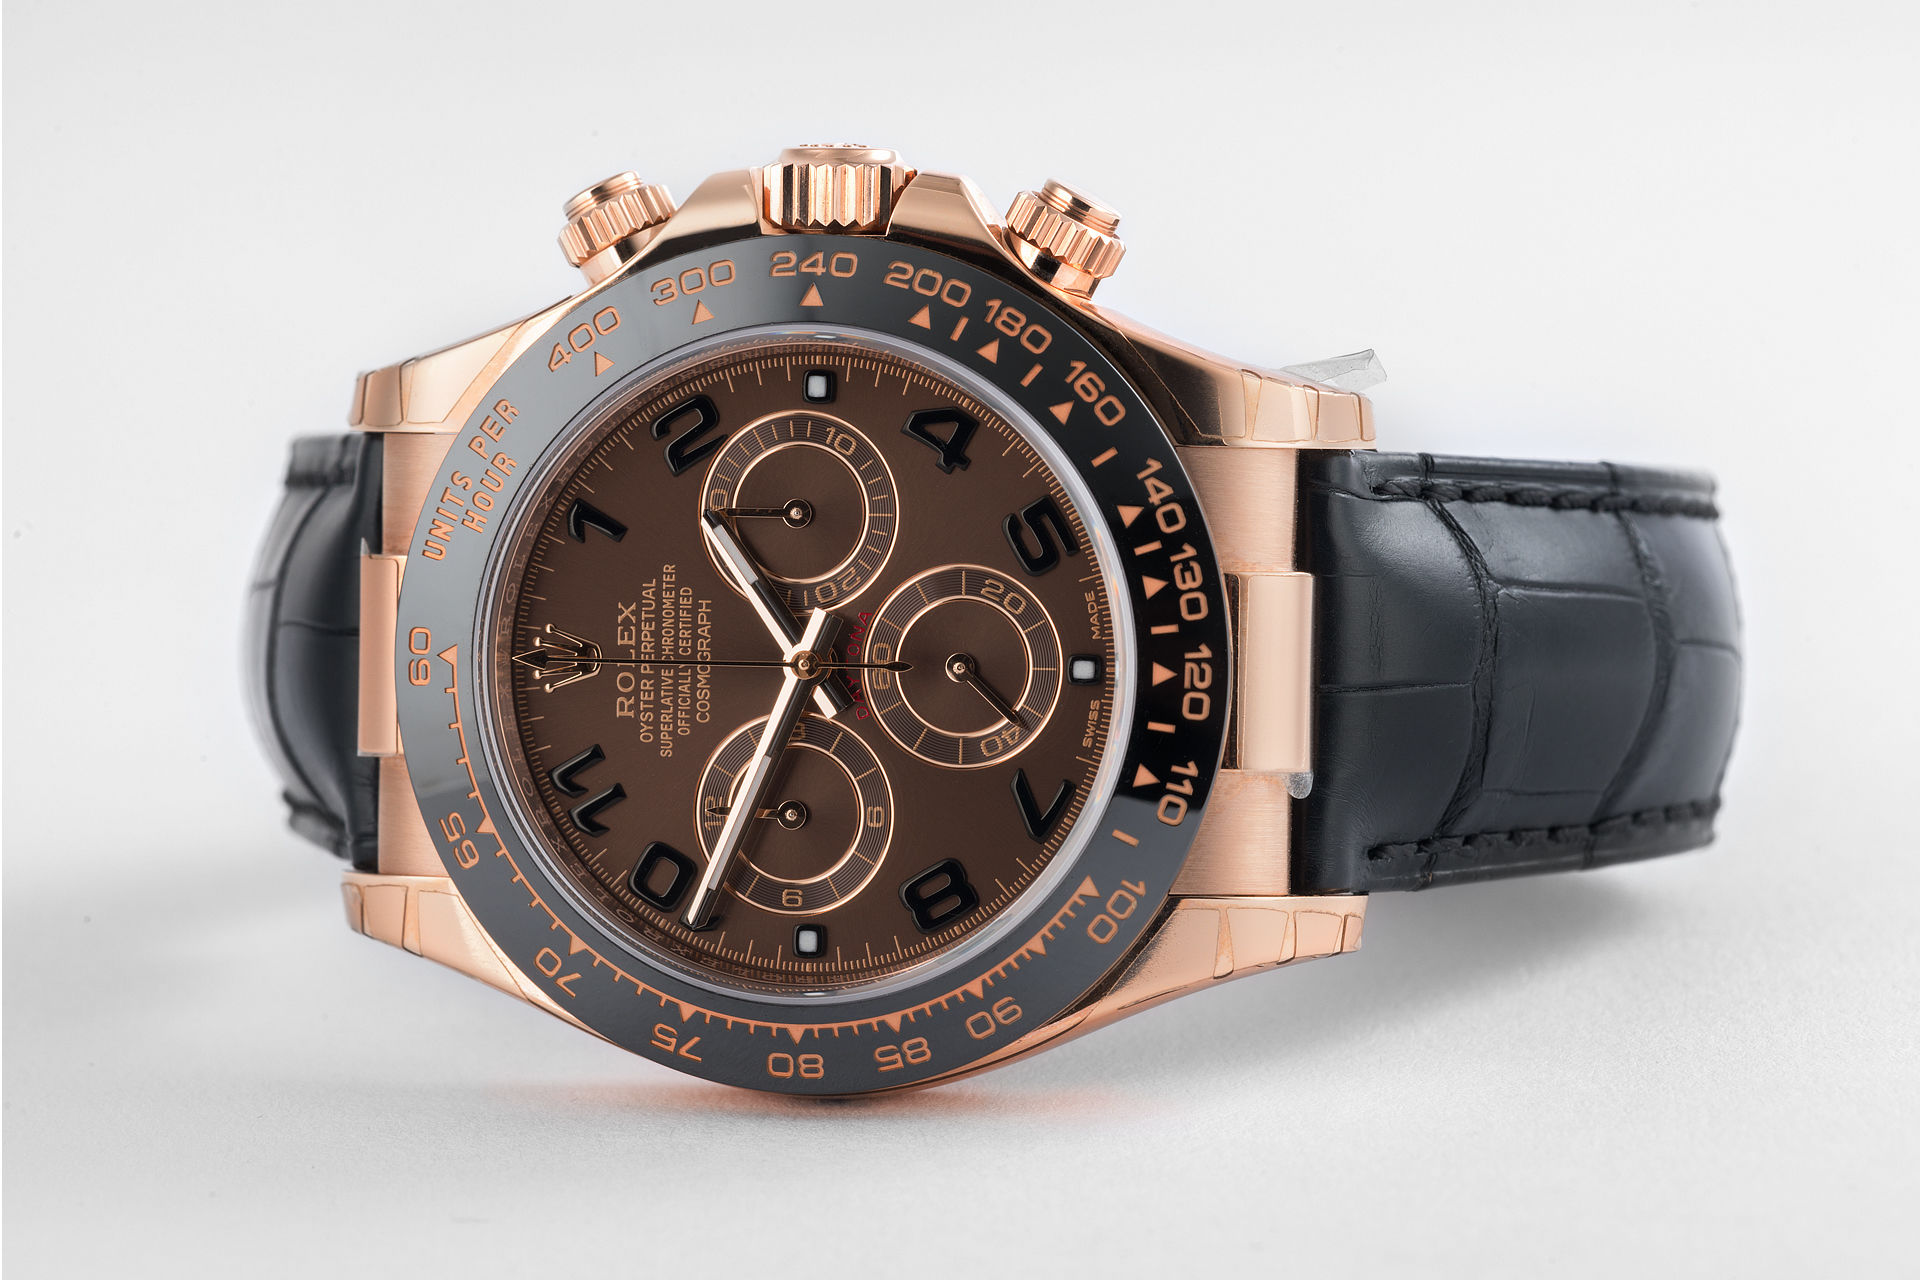 ref 116515LN | Rose Gold 'Fully Stickered' | Rolex Cosmograph Daytona